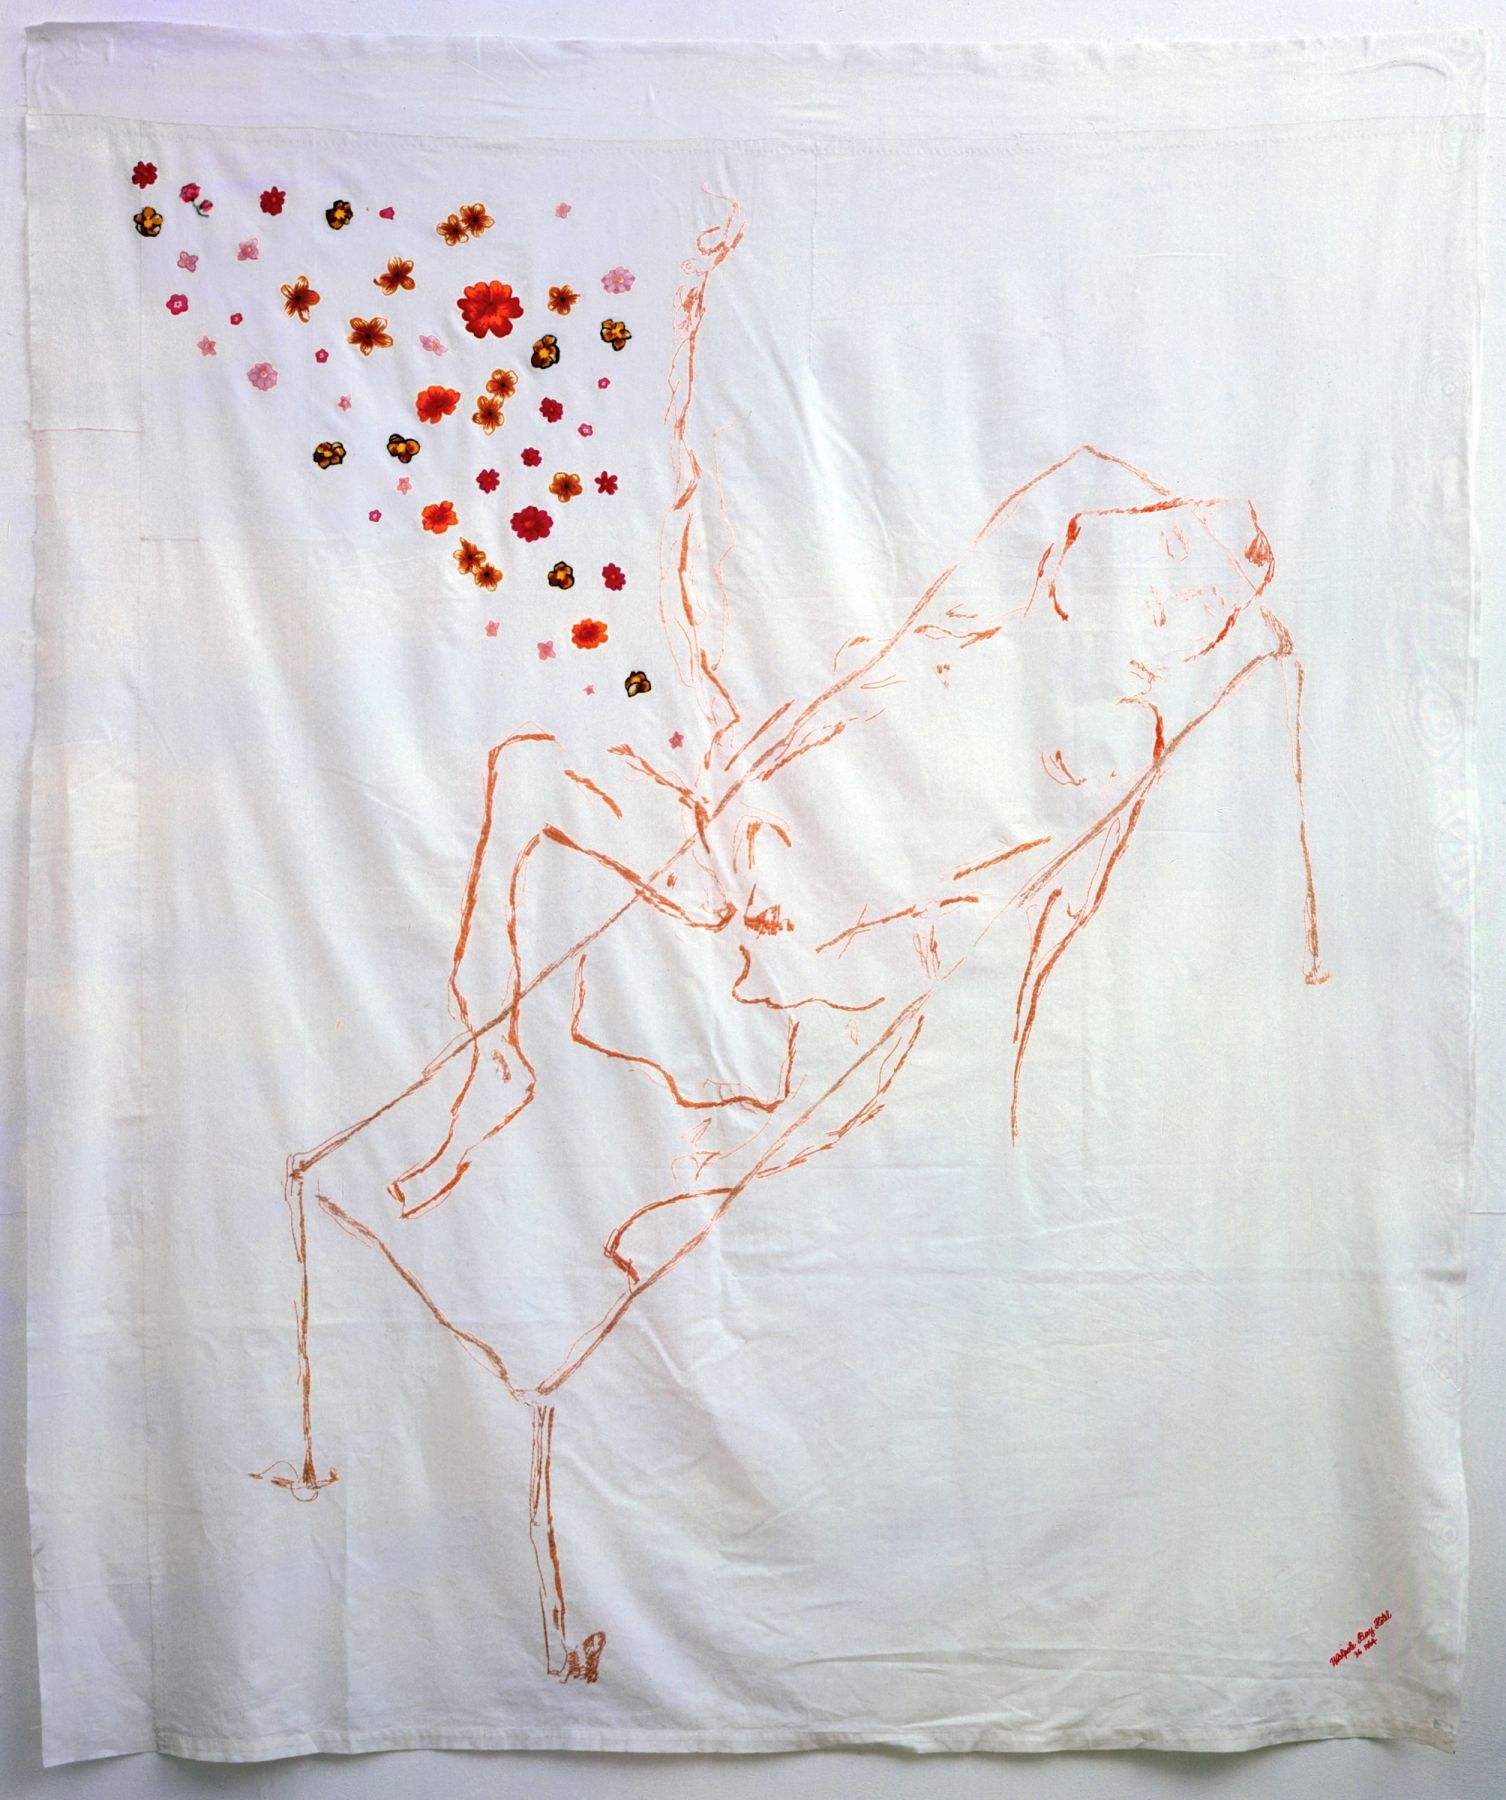 TRACEY EMIN, Say Goodbye to Mummy, 2002